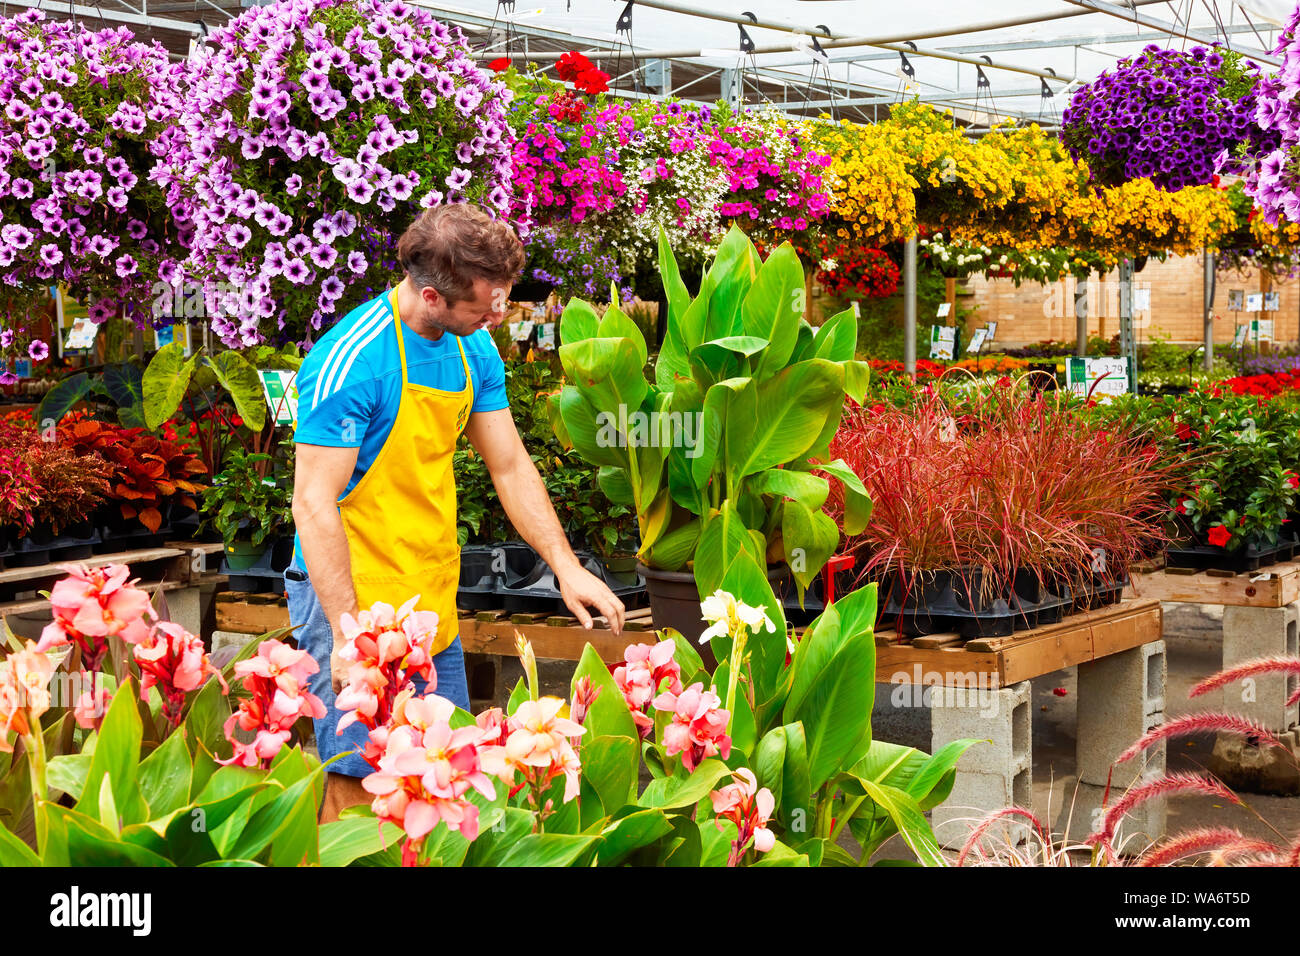 Florist truncates and arranges flowers and plants at Atwater flower market in Montreal, Quebec, Canada. Stock Photo